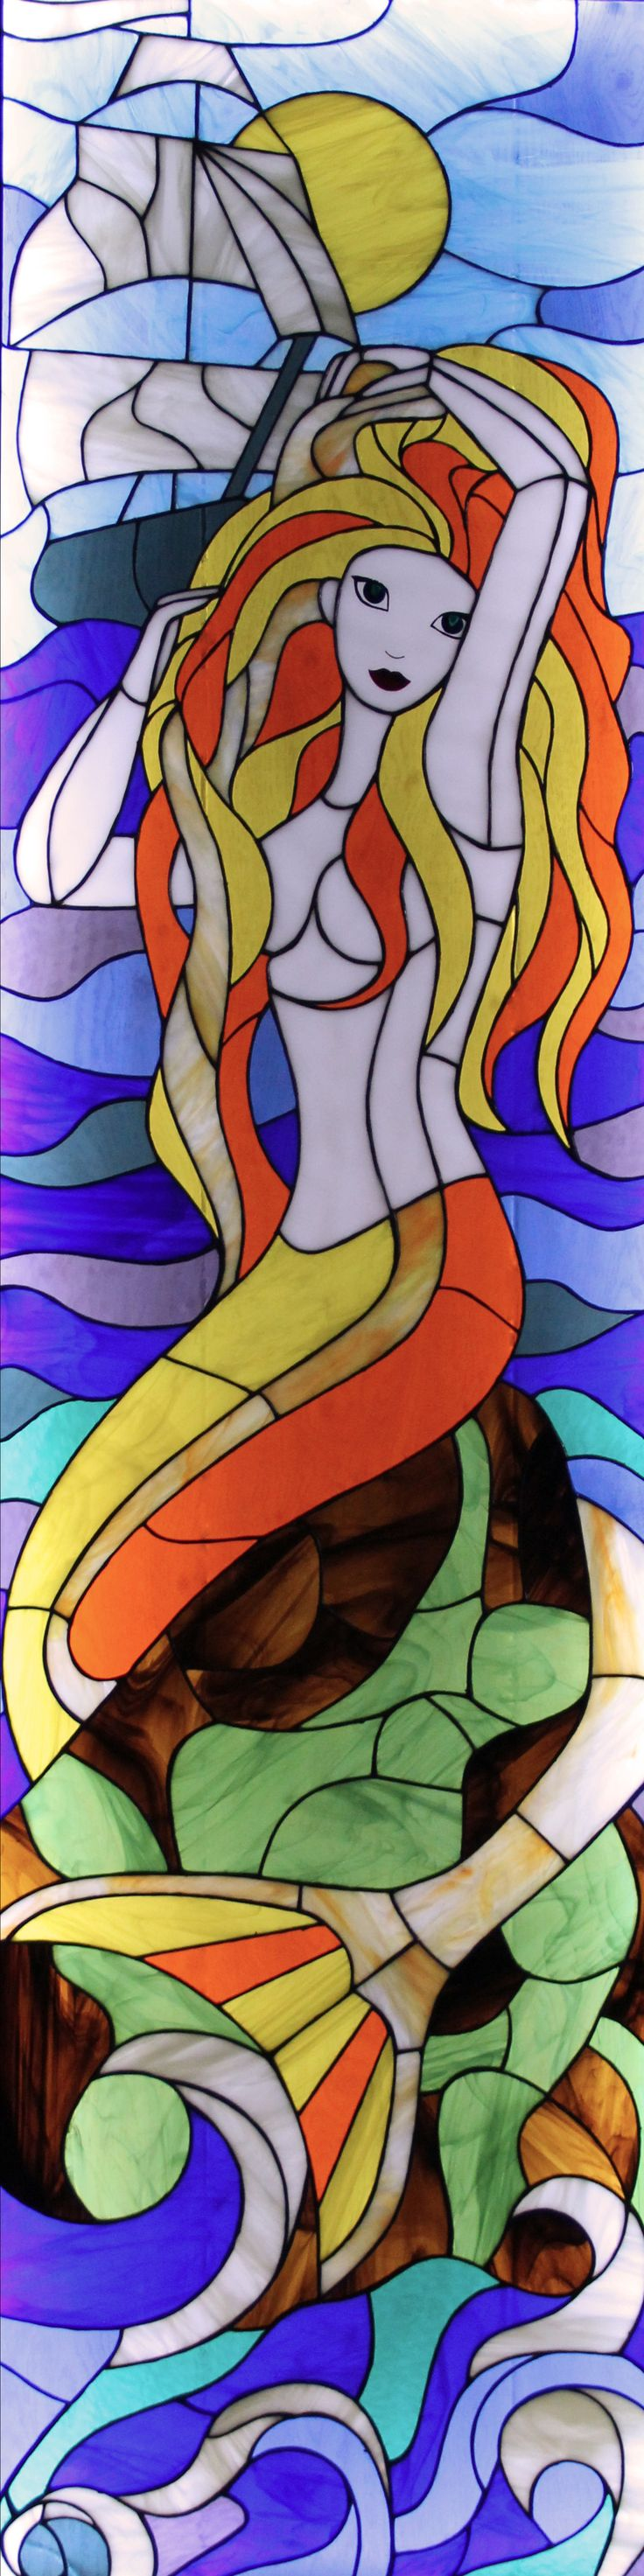 Inspired by the mermaid stained glass in Harry Potter